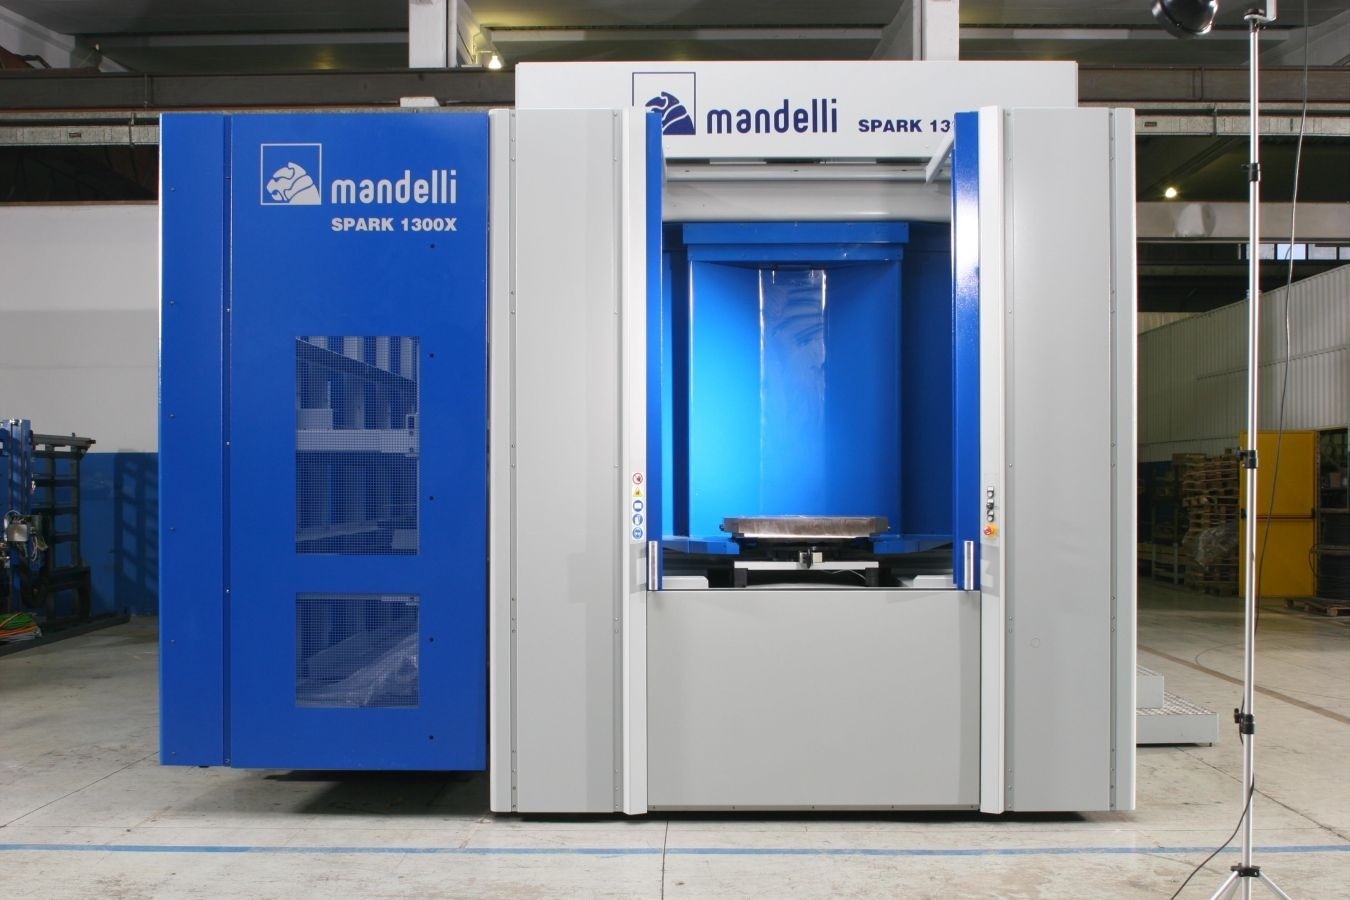 Mandelli Spark X 2600 CNC Horizontal Machining Center